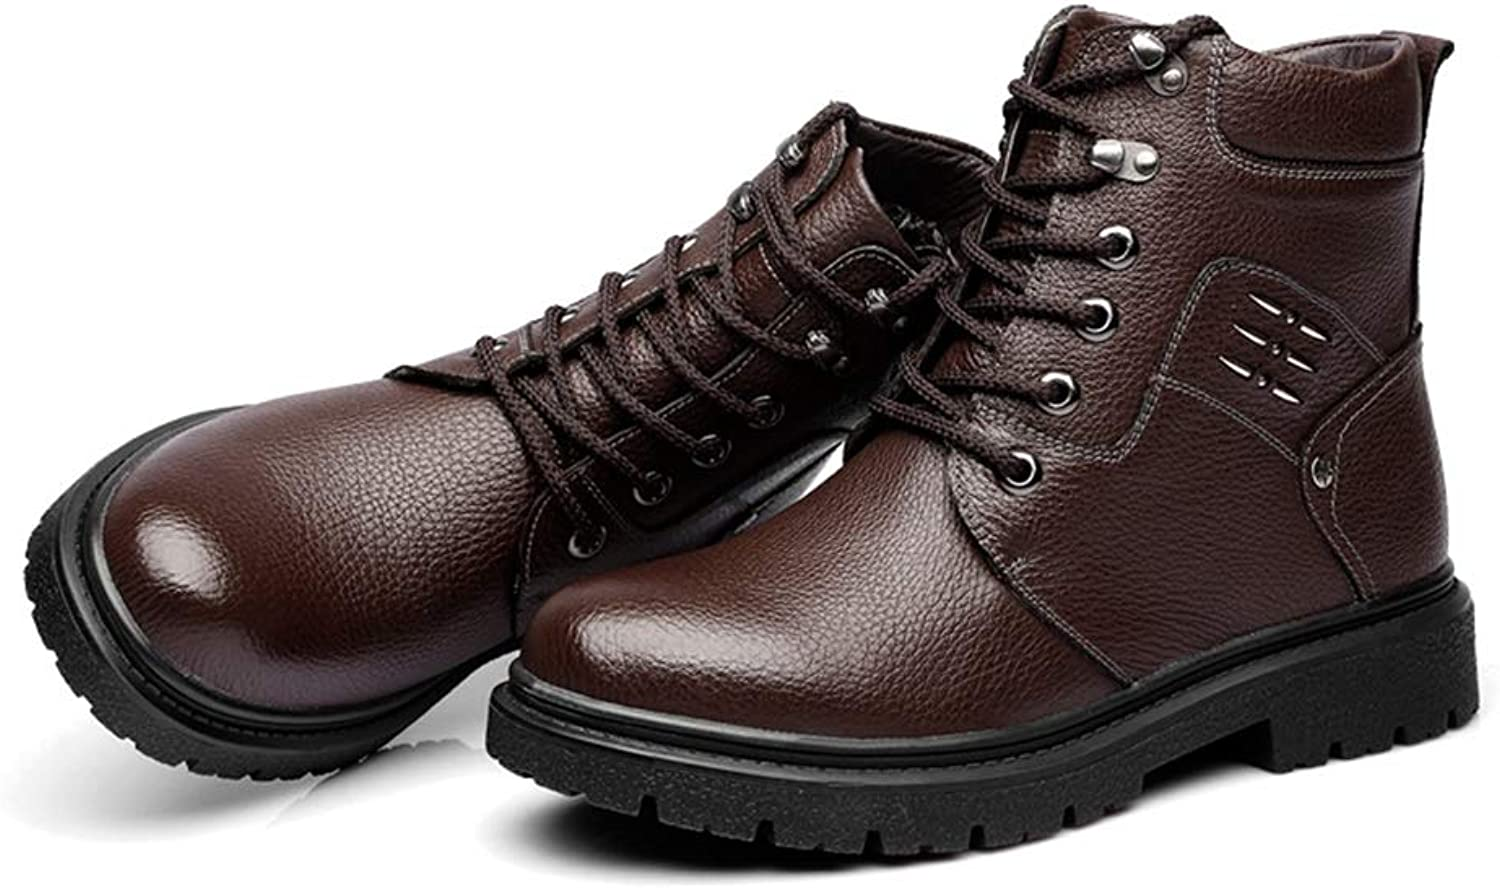 Men's Ankle Boots Leisure Classic Comfort High Top Outdoor Rubber Outsole Martin Boots